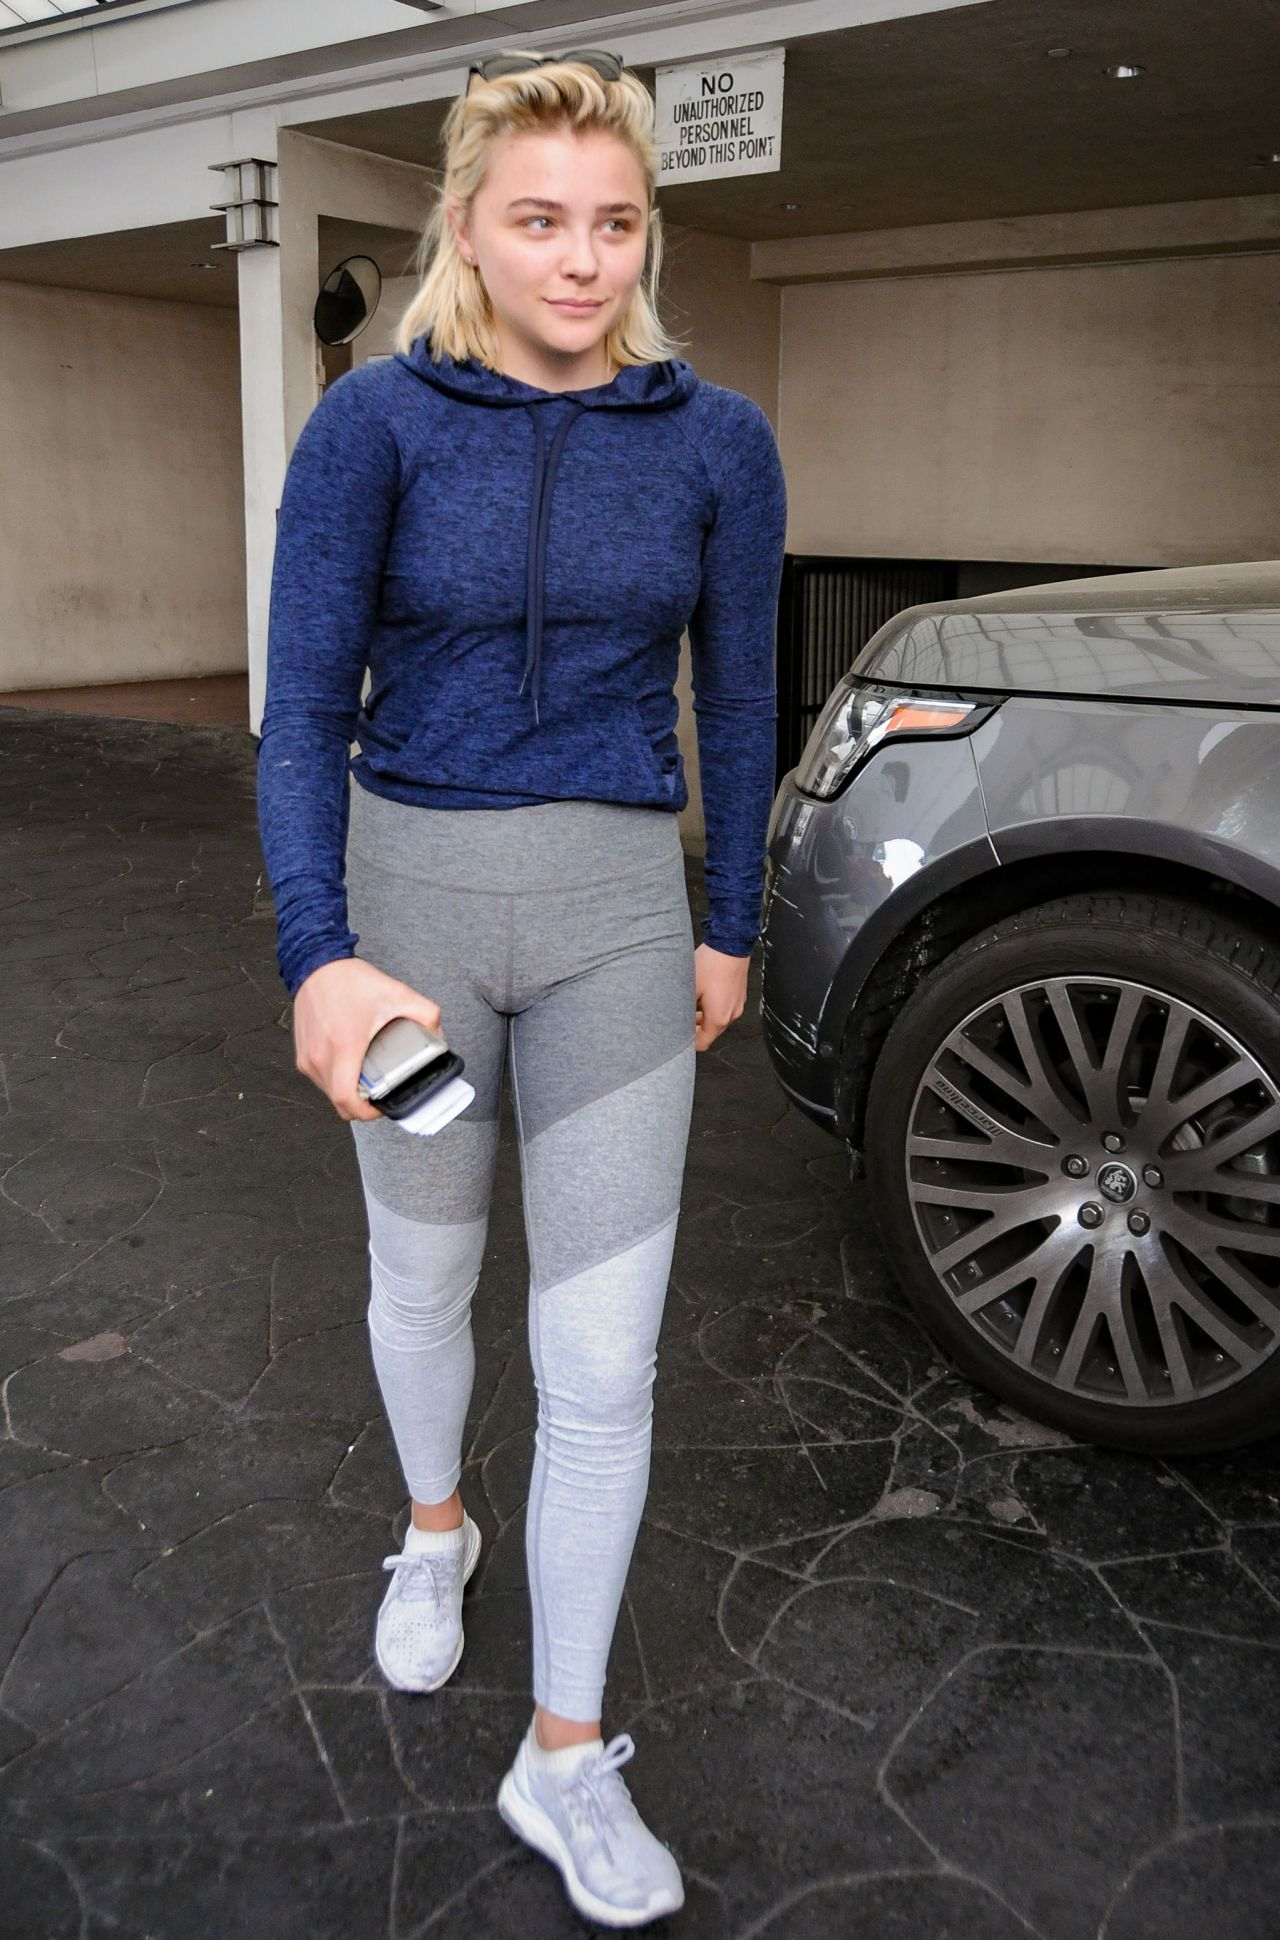 Chloe Moretz In Tight Fitting Activewear - Carries Some -4203